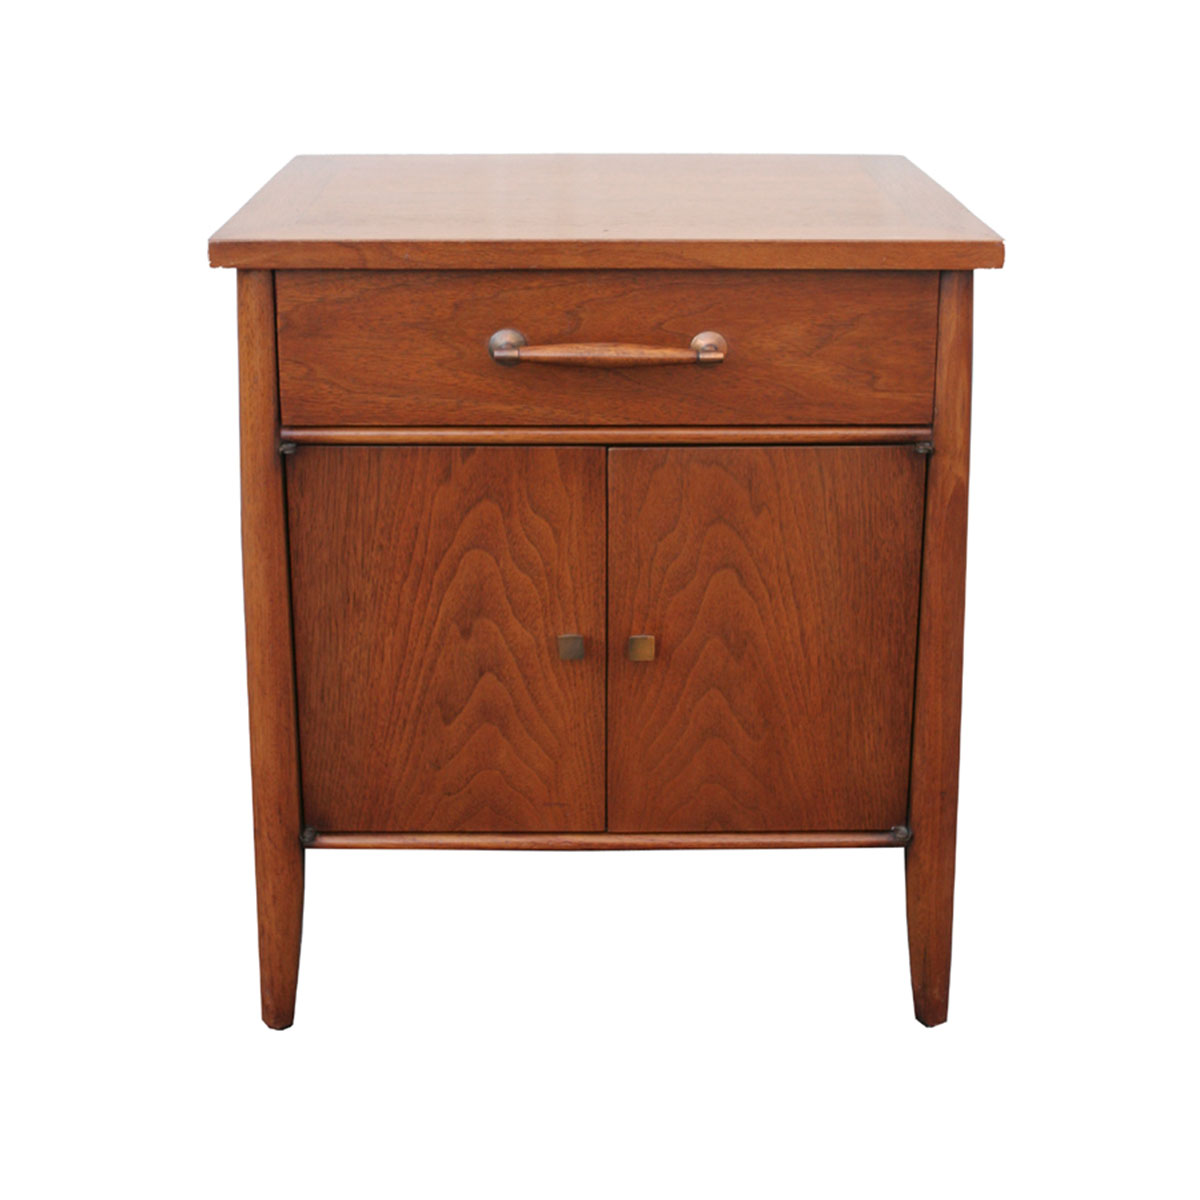 Henredon Mid Century Modern Walnut Nightstand/End Table